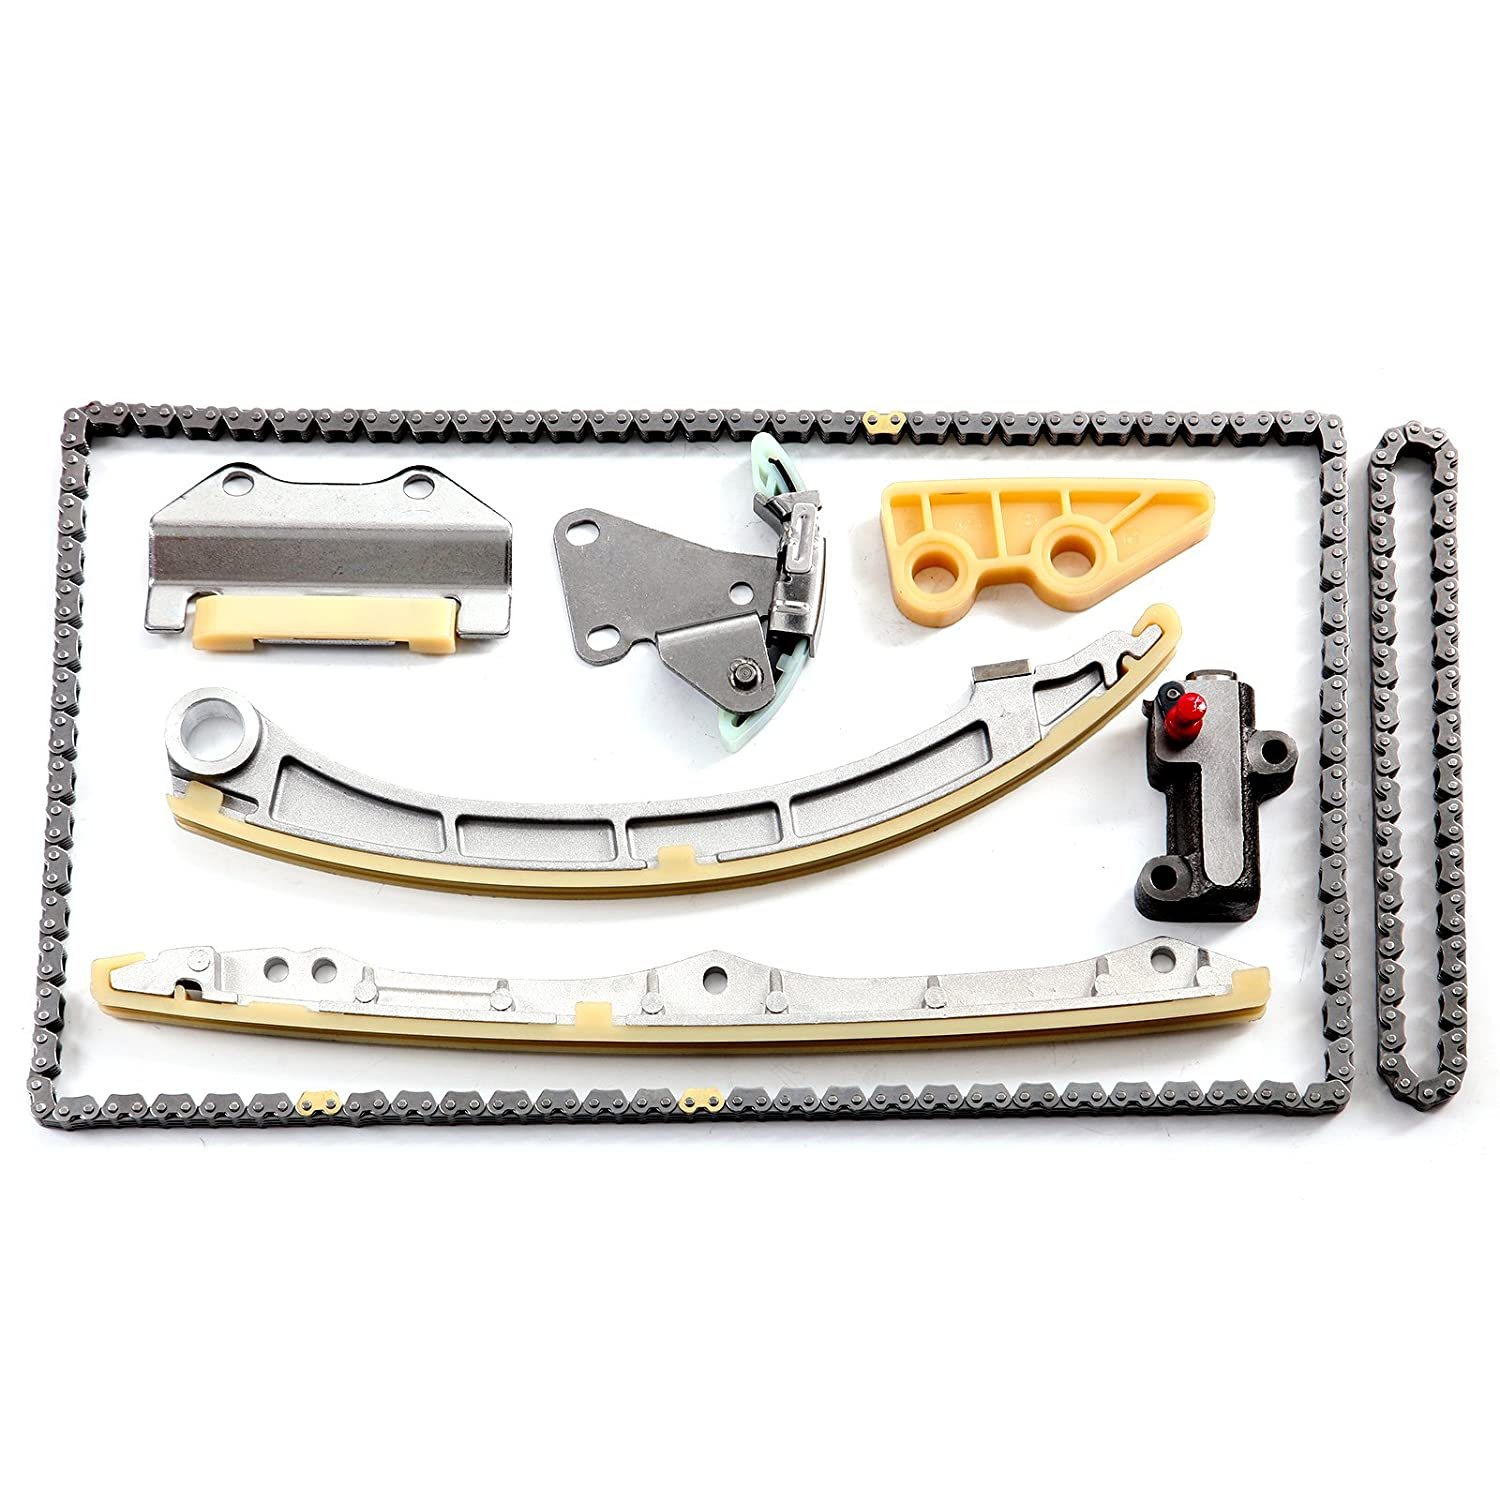 ECCPP Timing Chain Kit-noGear for 02-09 Honda Civic Acura RSX 2.0L K20A3 K20A2 K20Z3 K20Z1 052143-5211-1359341